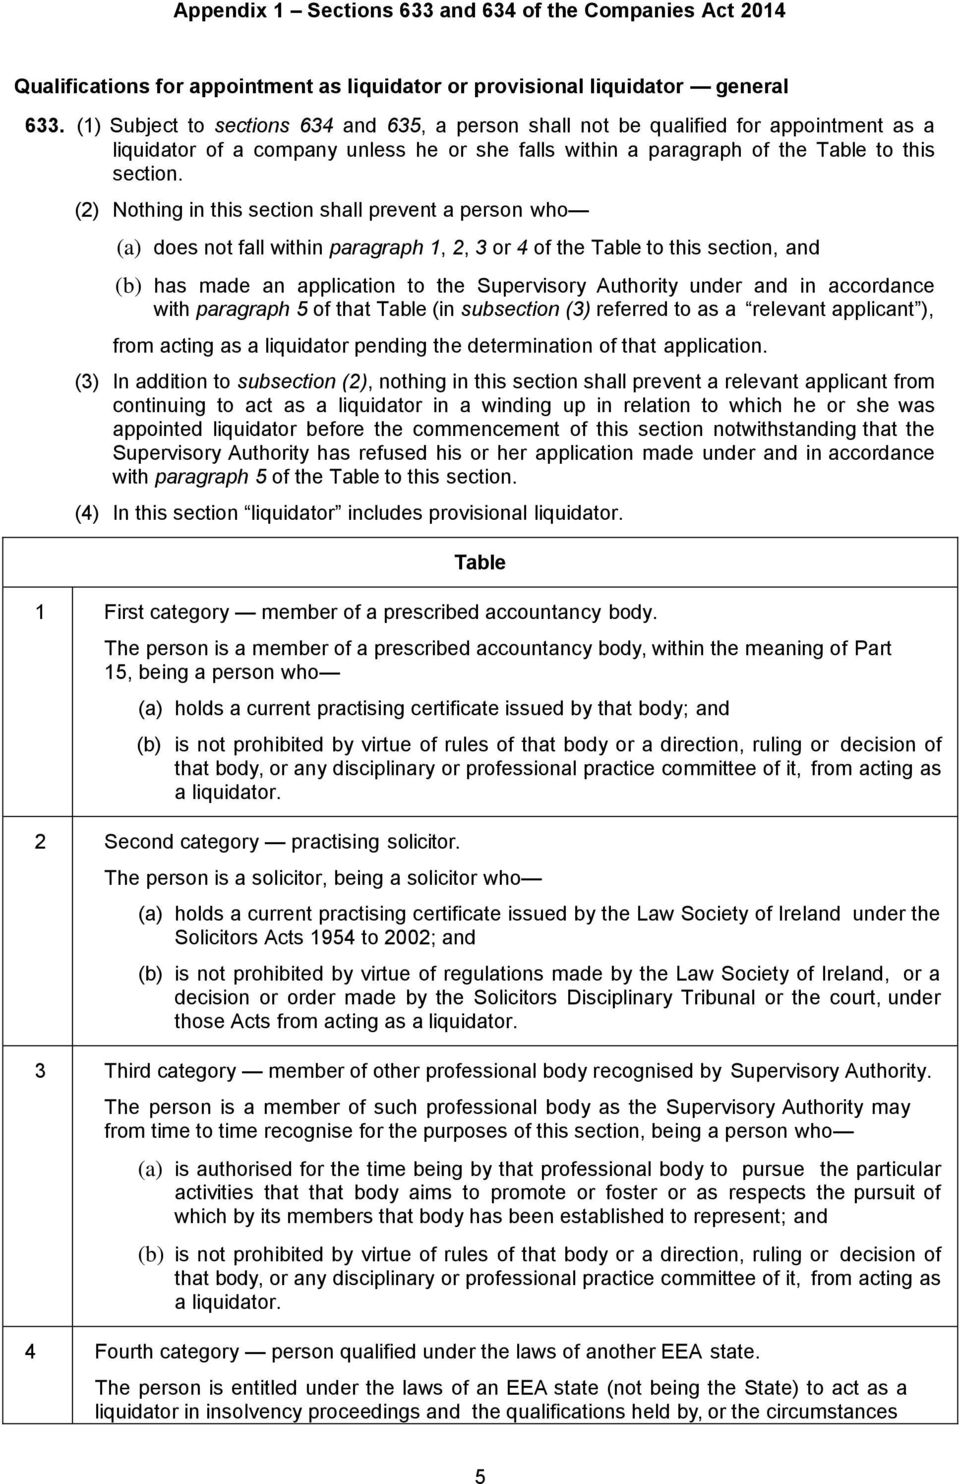 (2) Nothing in this section shall prevent a person who (a) does not fall within paragraph 1, 2, 3 or 4 of the Table to this section, and (b) has made an application to the Supervisory Authority under